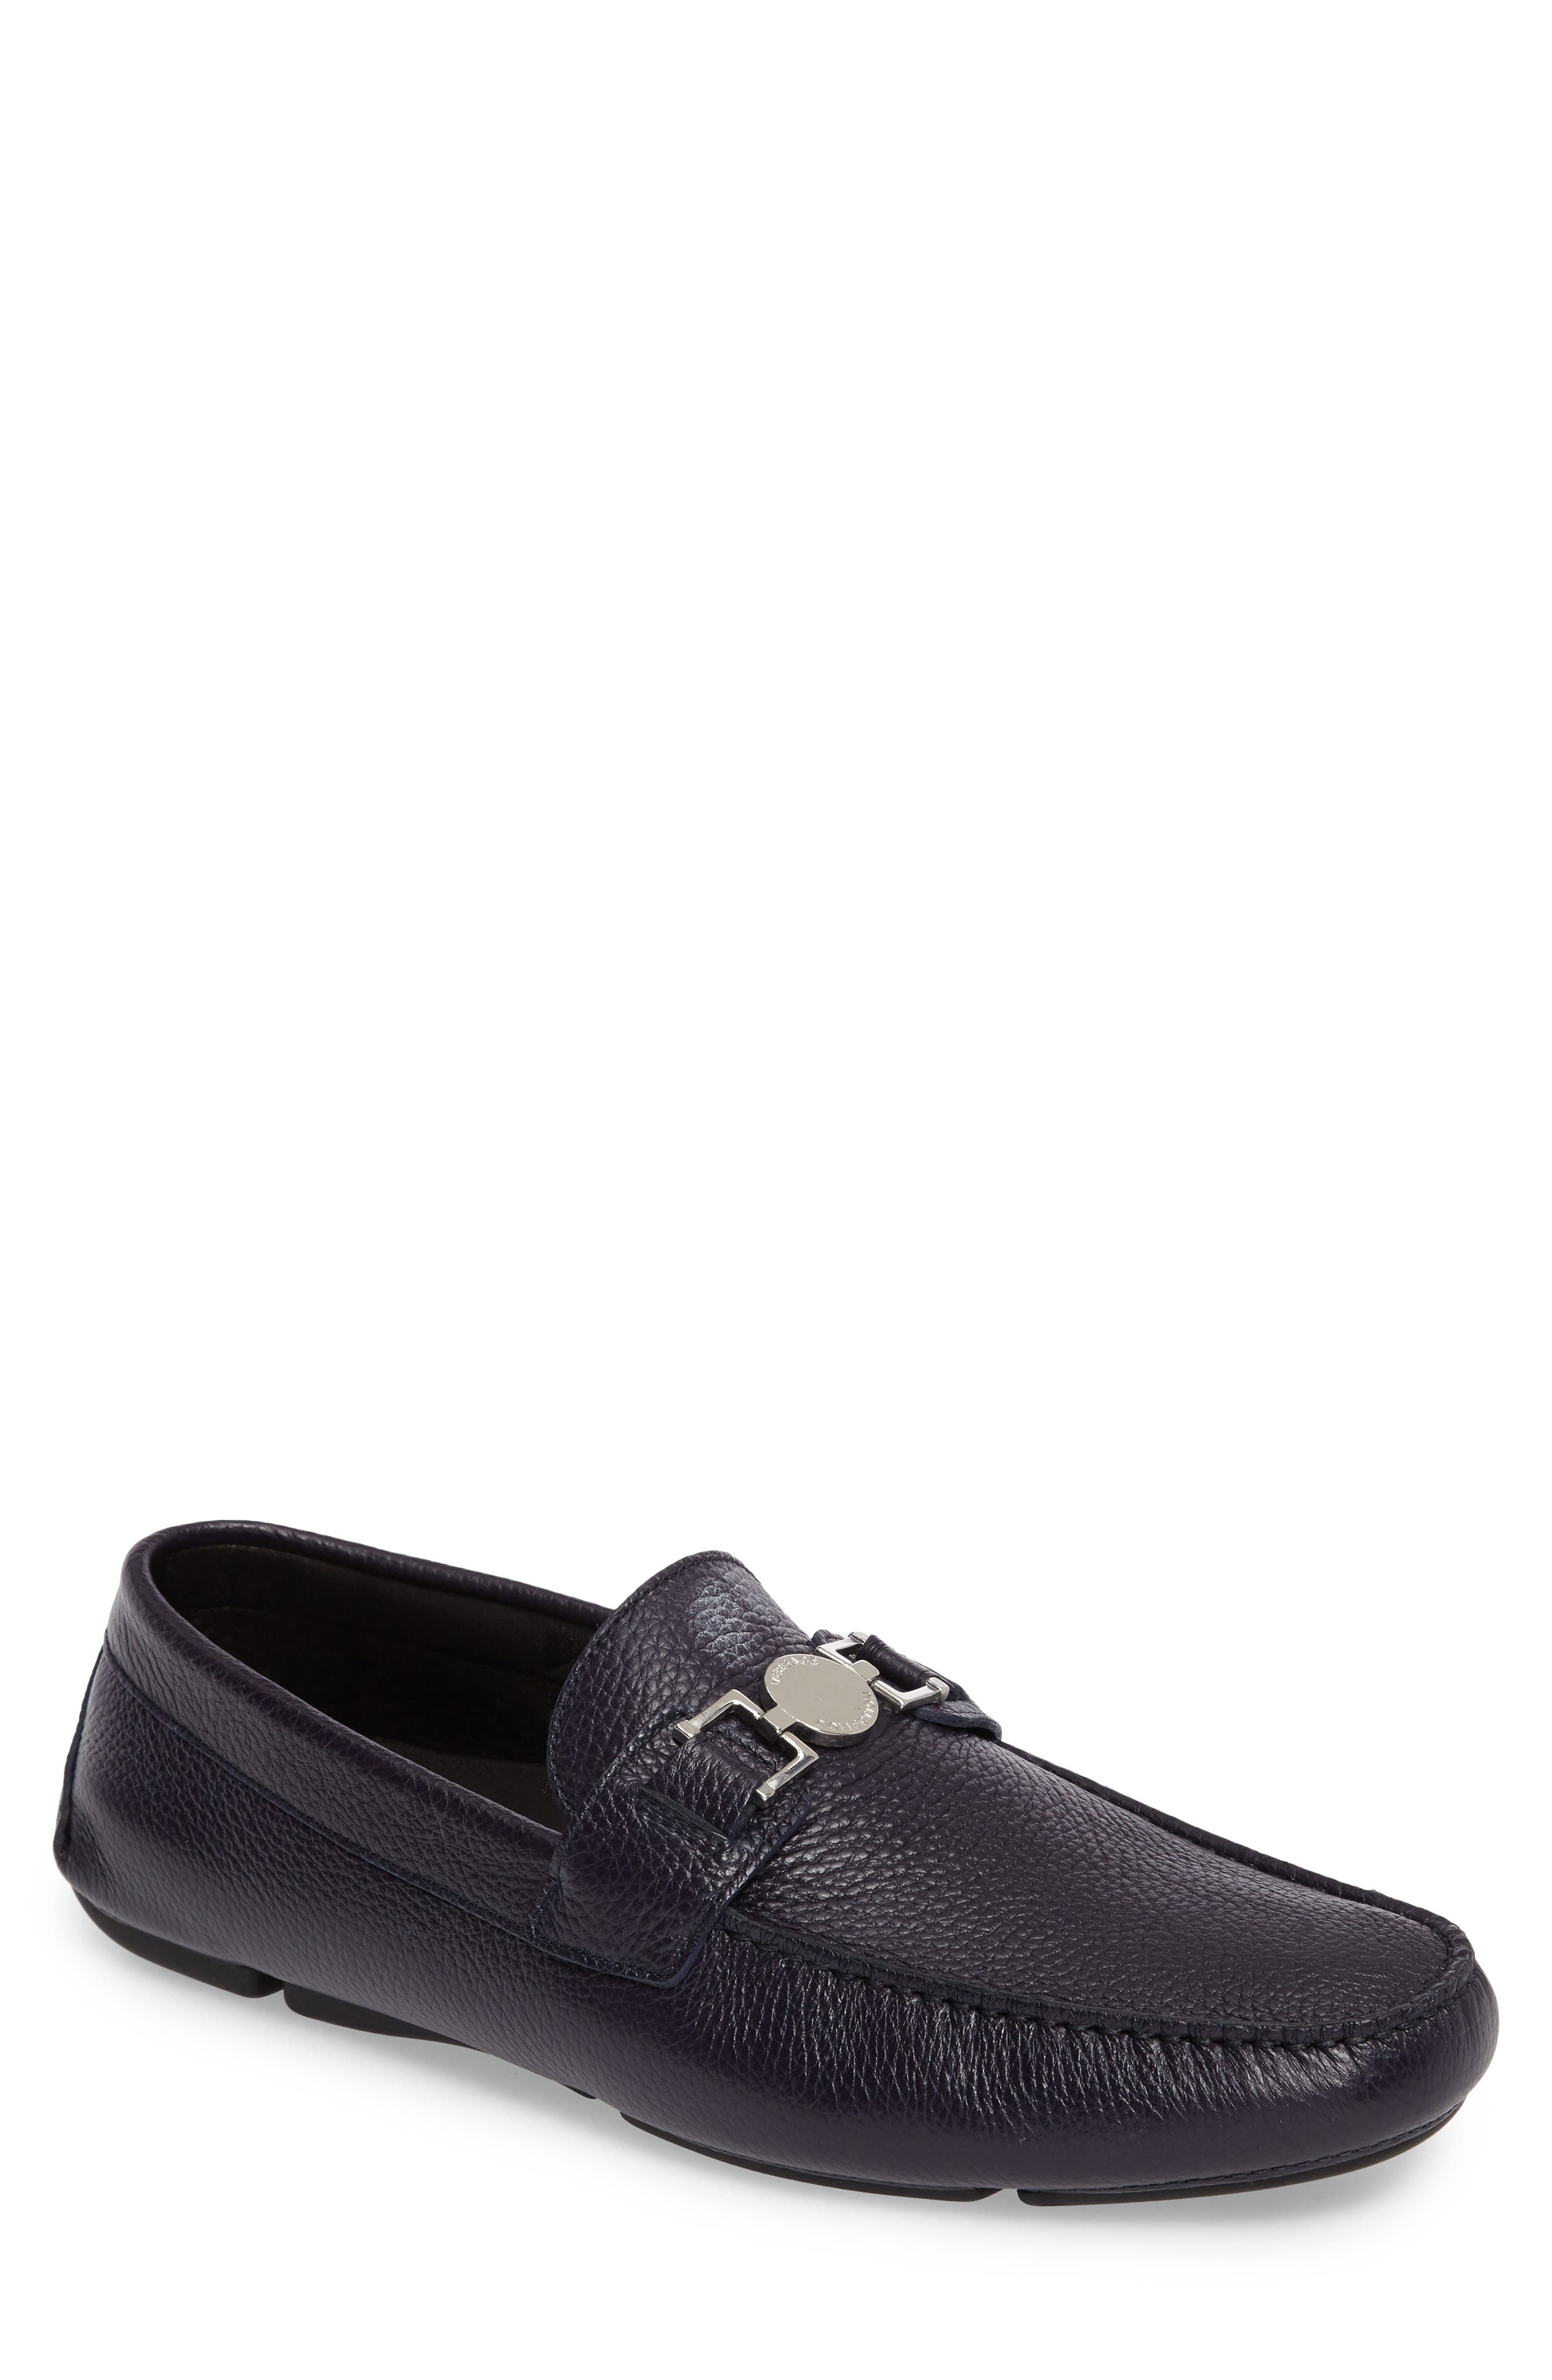 Alternate Image 1 Selected - Versace Driving Shoe (Men)